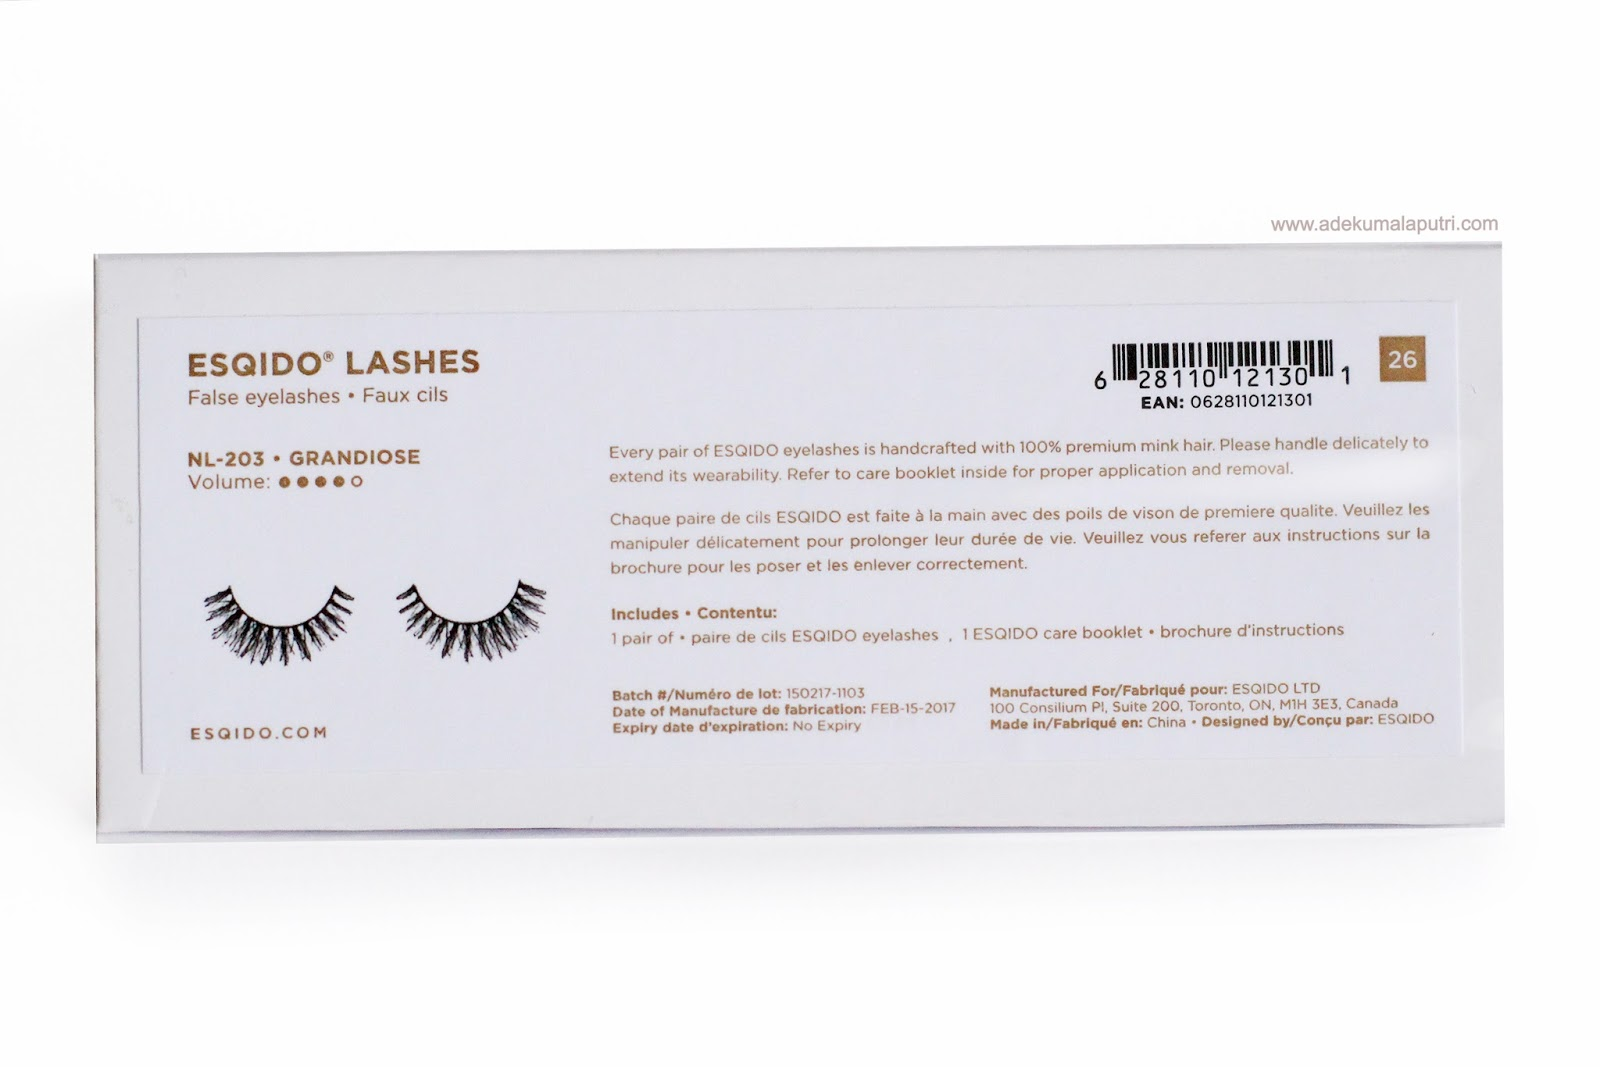 ed197d7d48f As you guys can see, each pair of Esqido lashes comes in a reusable white  and rose gold box.